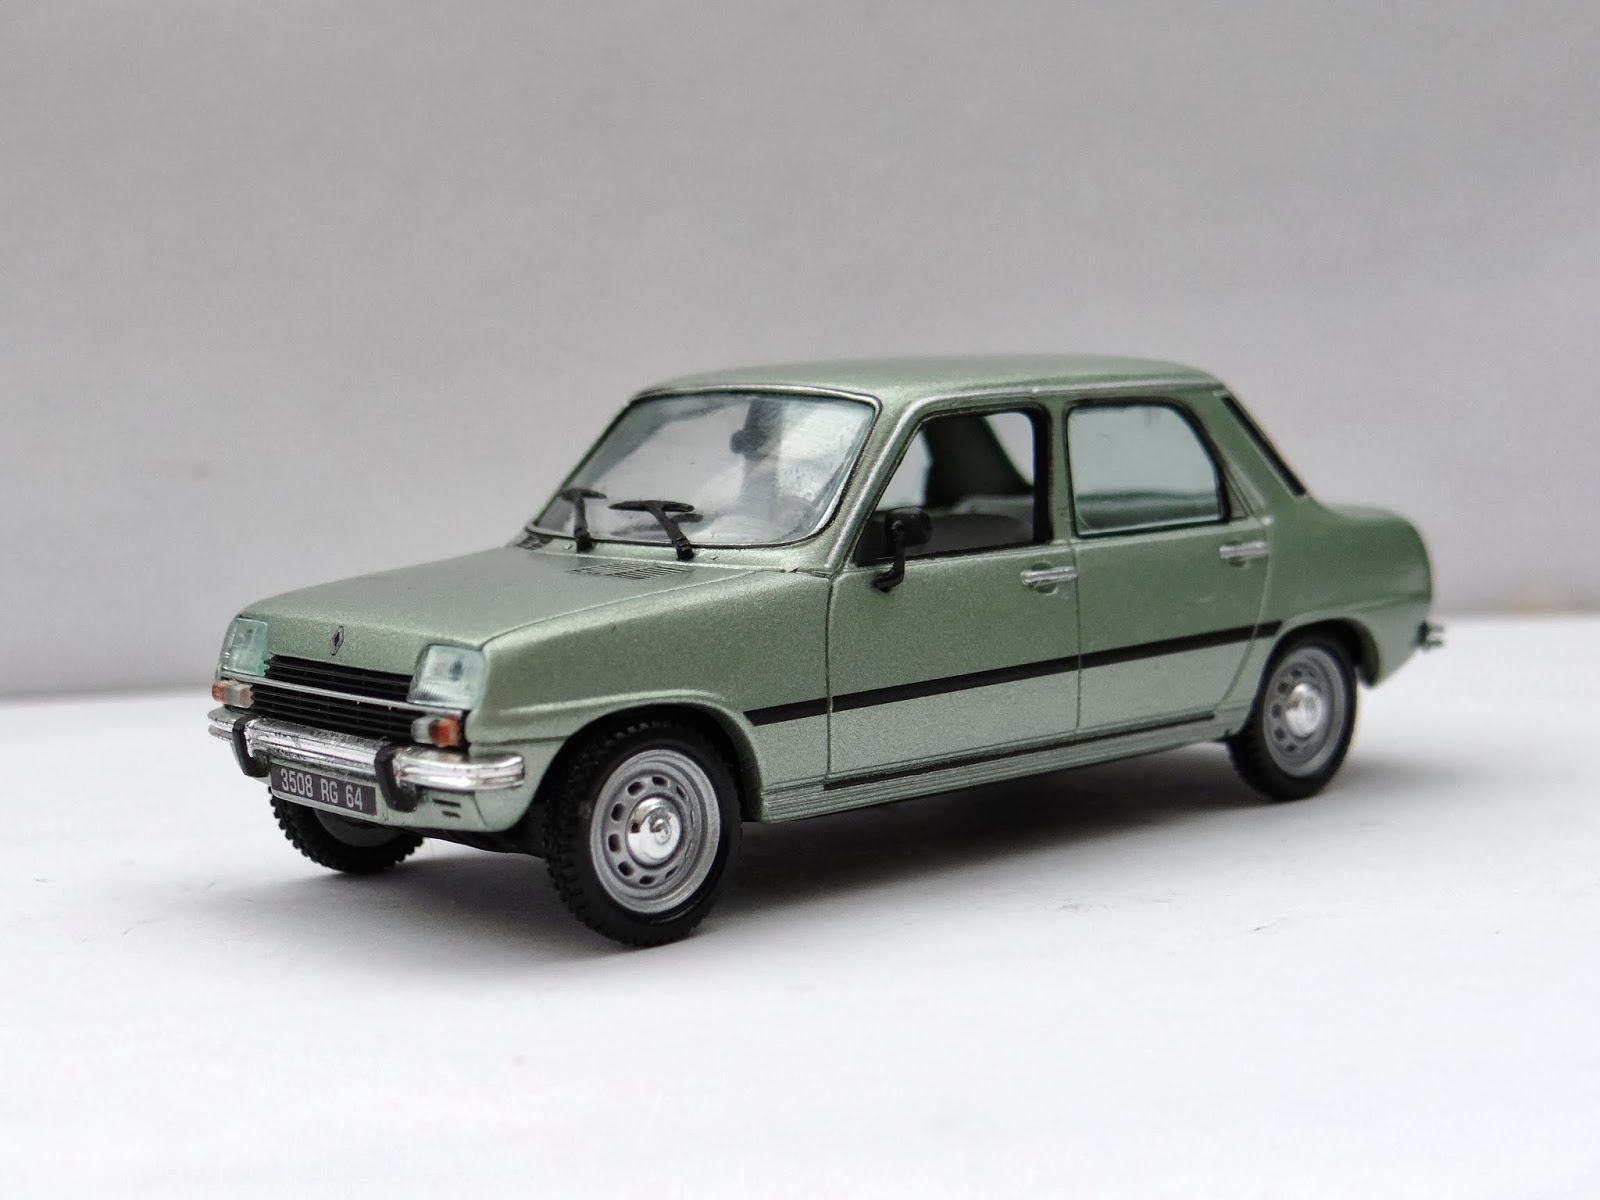 Modele likewise Fiat 131 19741985 Italia furthermore 327707310378544062 also Renault 7 Tl as well Ford Capri. on 1974 alfa romeo